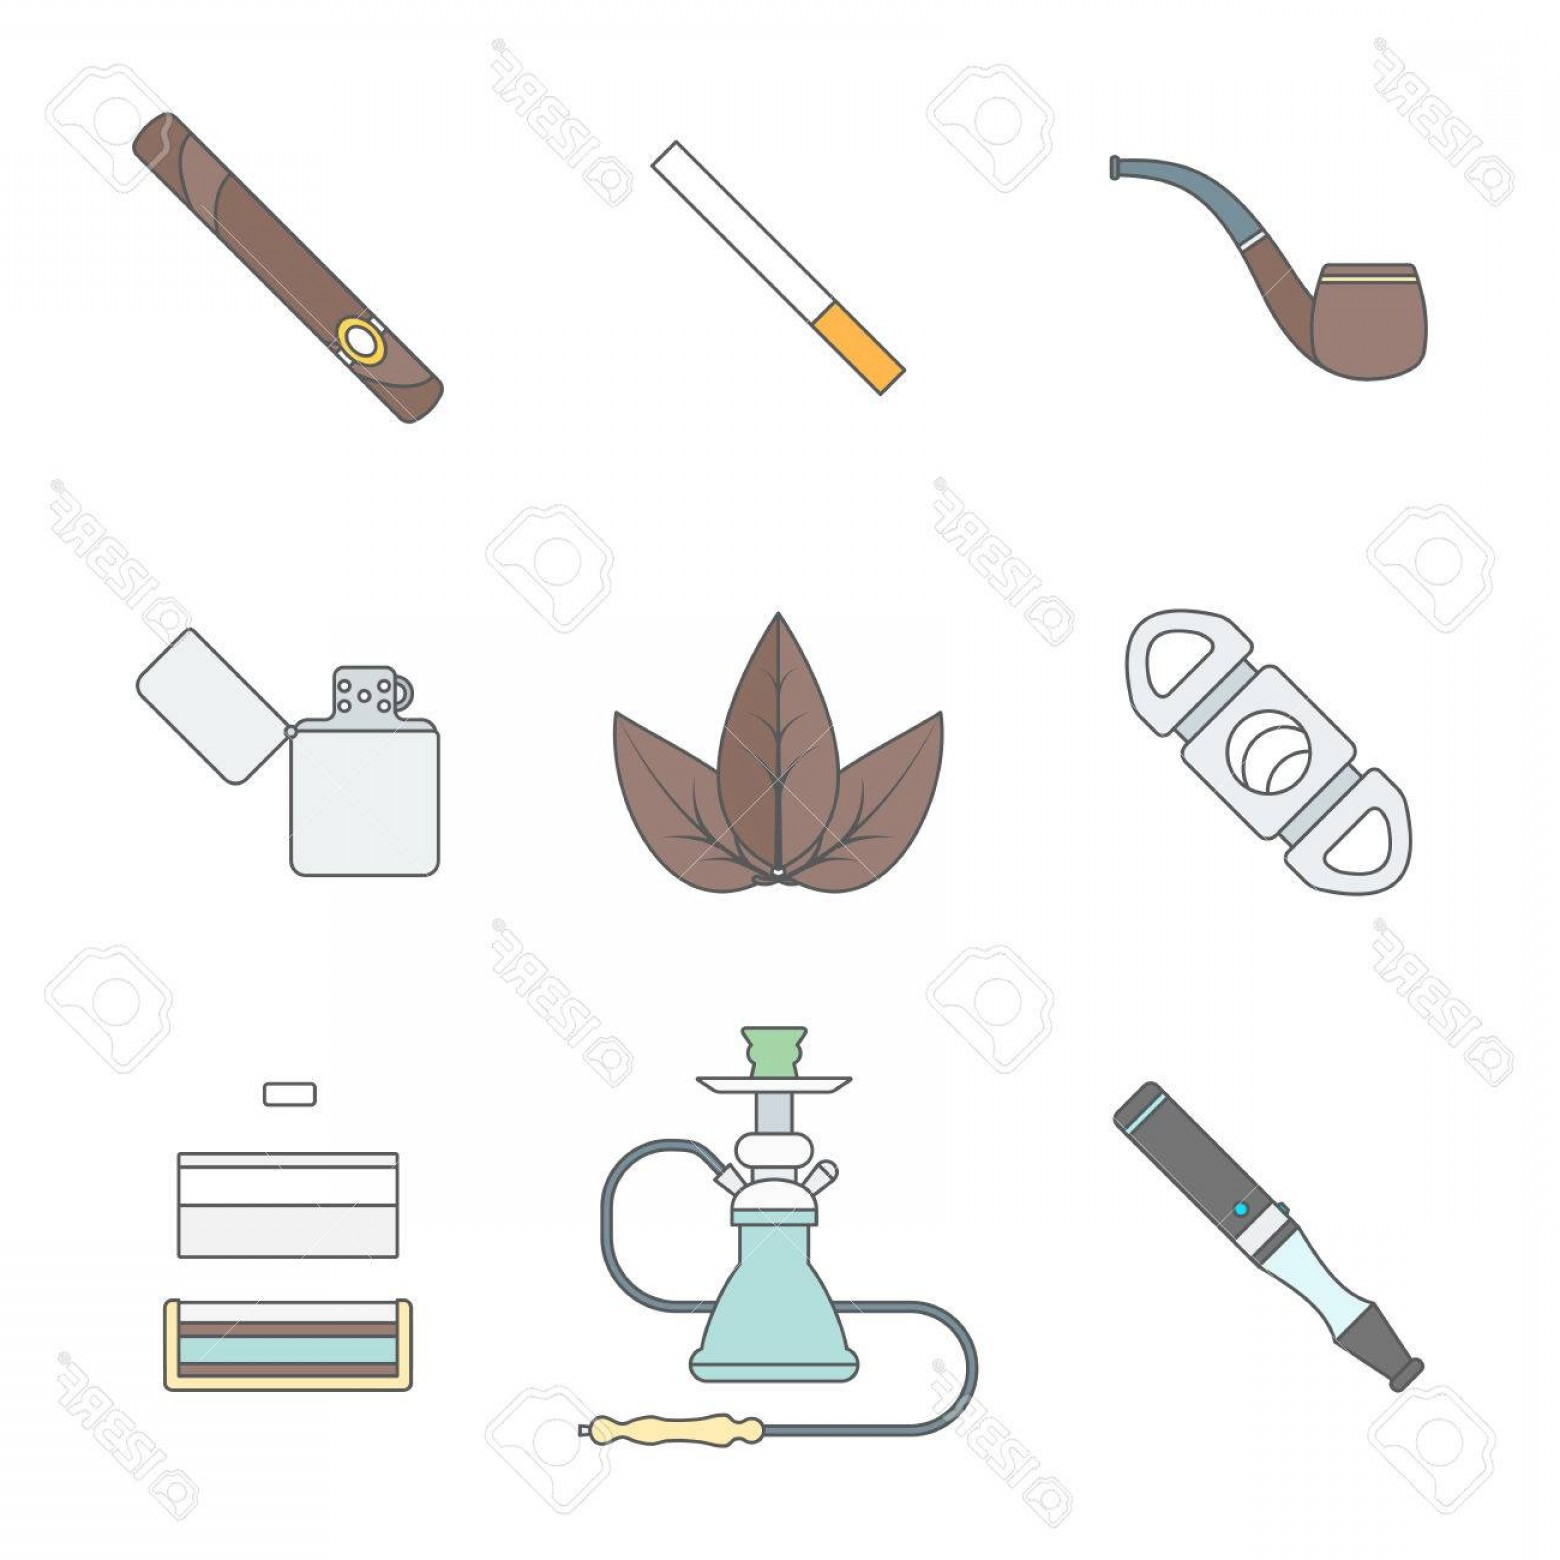 Loose- Leaf Tobacco Vector: Photostock Vector Vector Color Outline Various Tobacco Goods Accessories Icons Set White Background